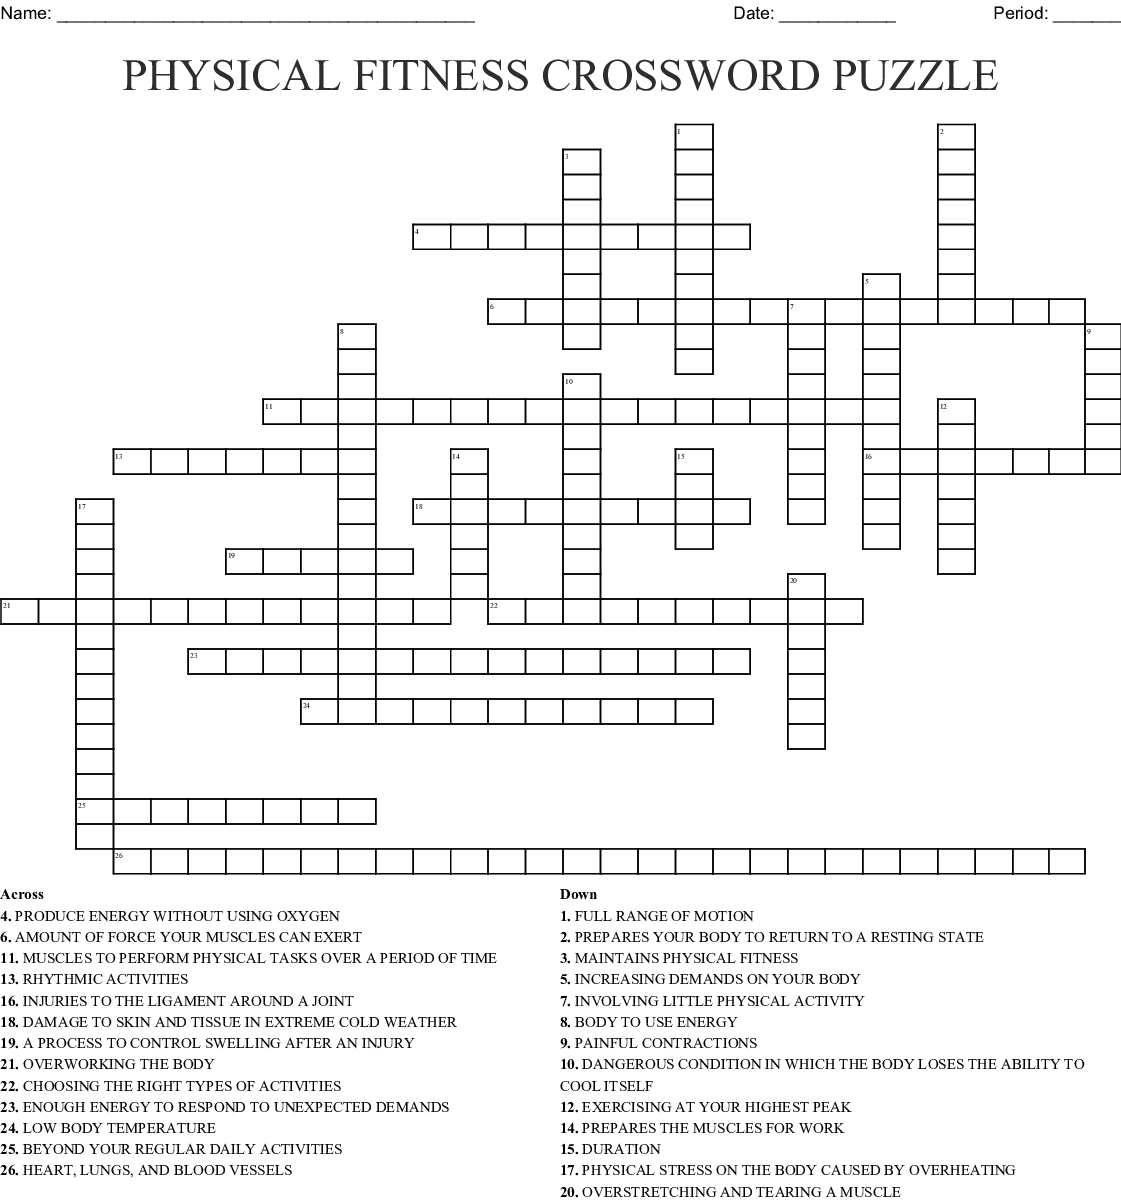 Physical Fitness Crossword Puzzle Crossword - Wordmint - Printable Wellness Crossword Puzzles